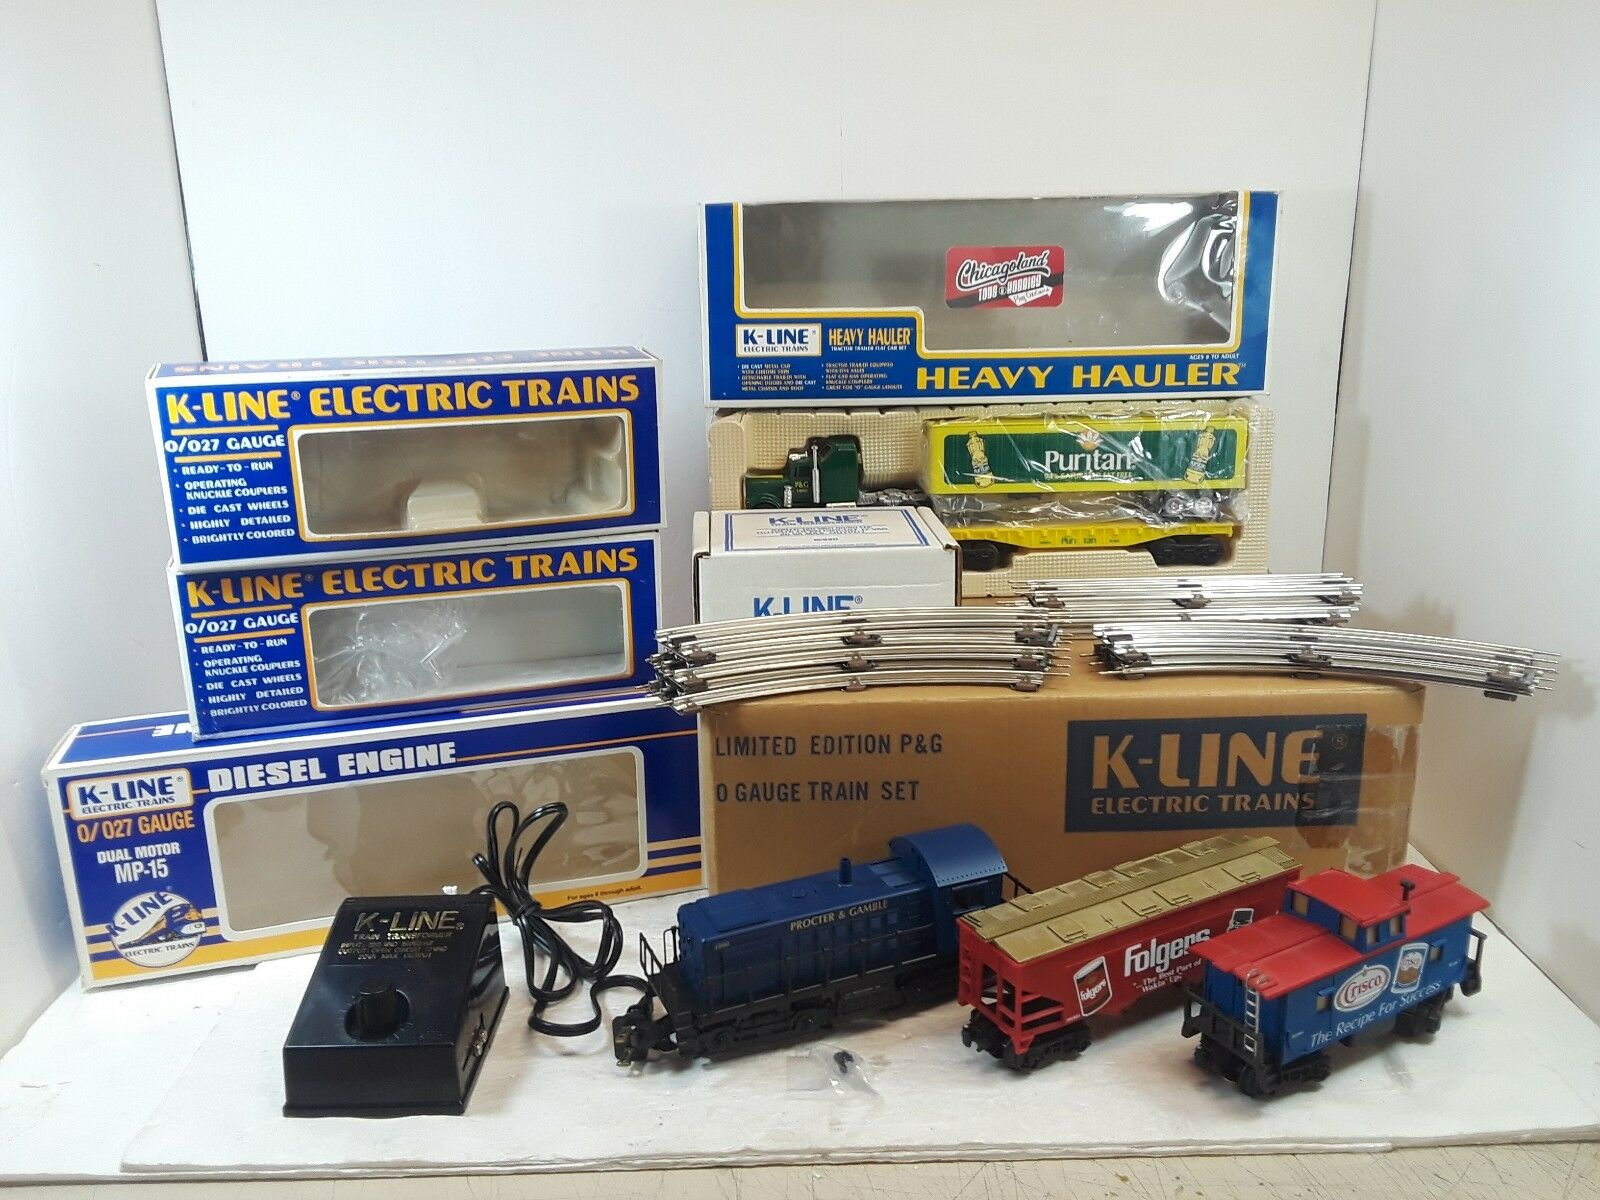 K-Line K1084 P&G Train Set